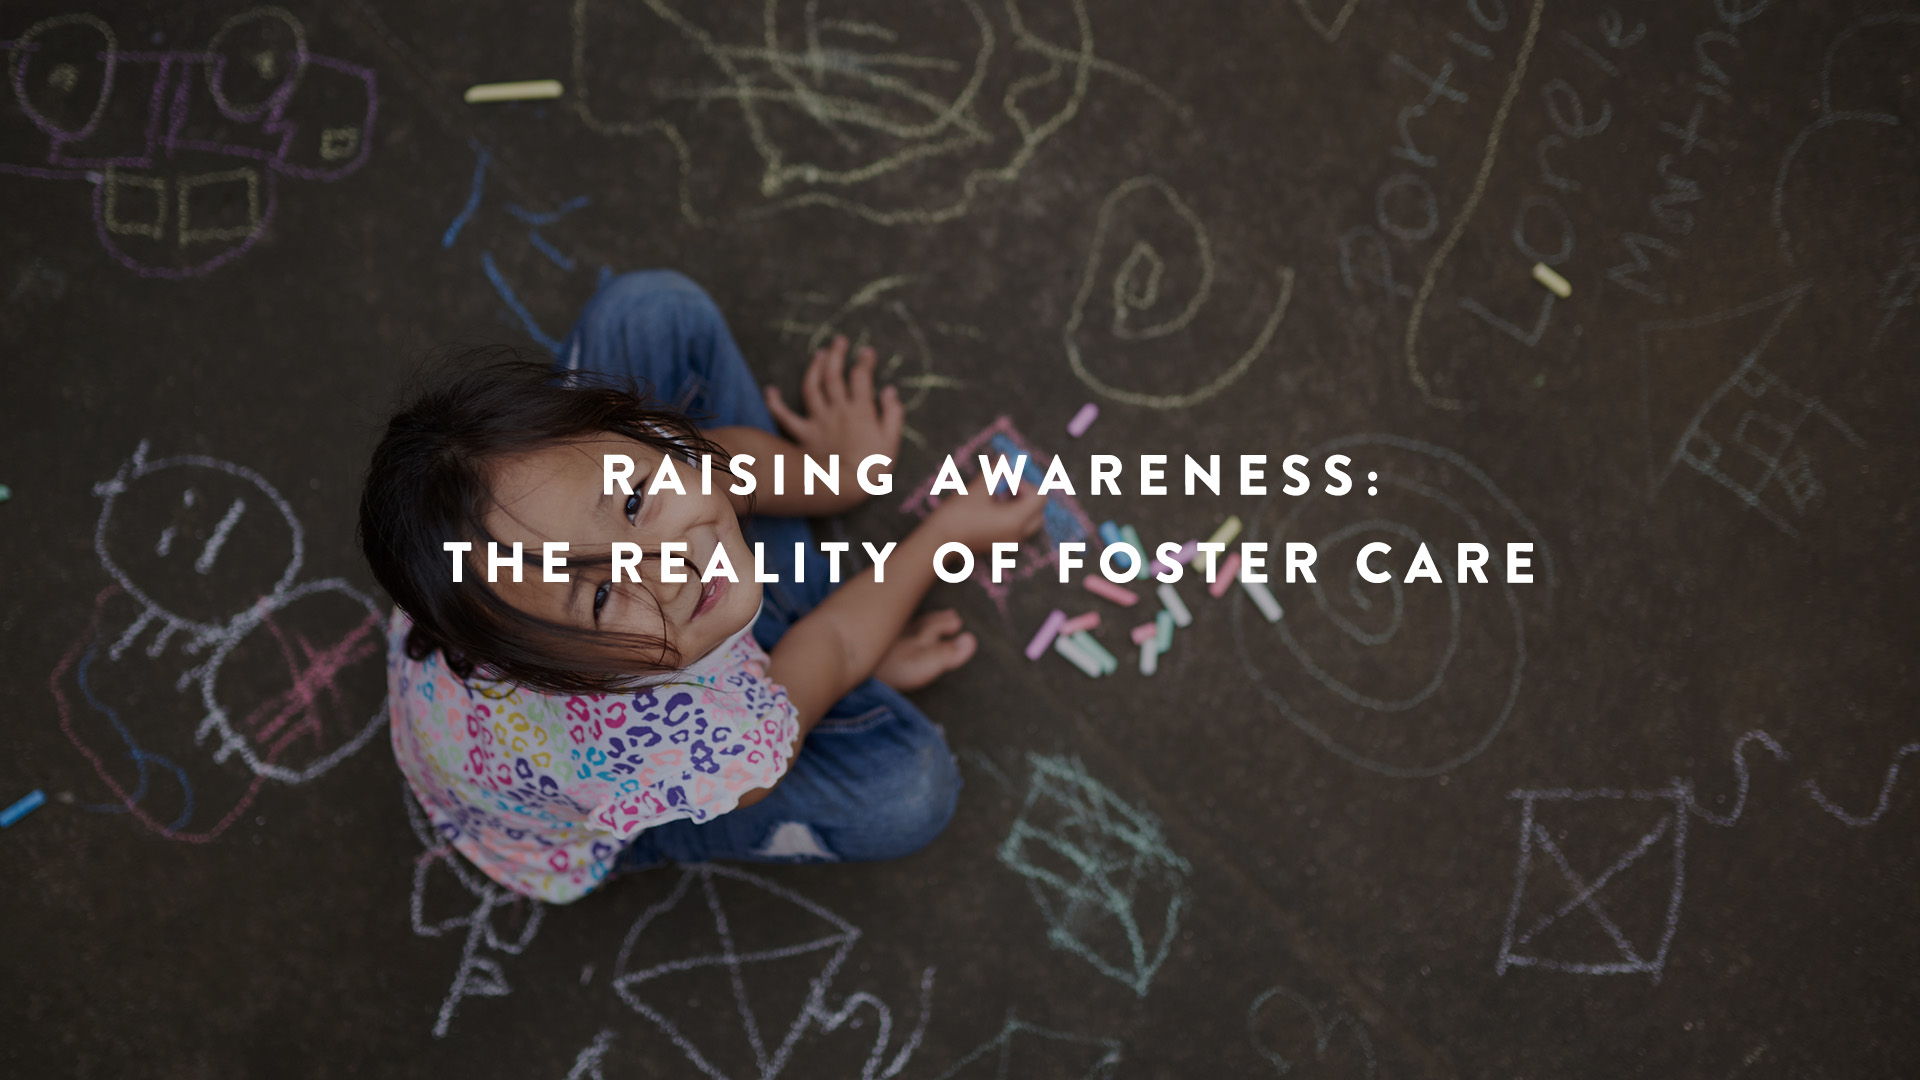 the reality of foster care